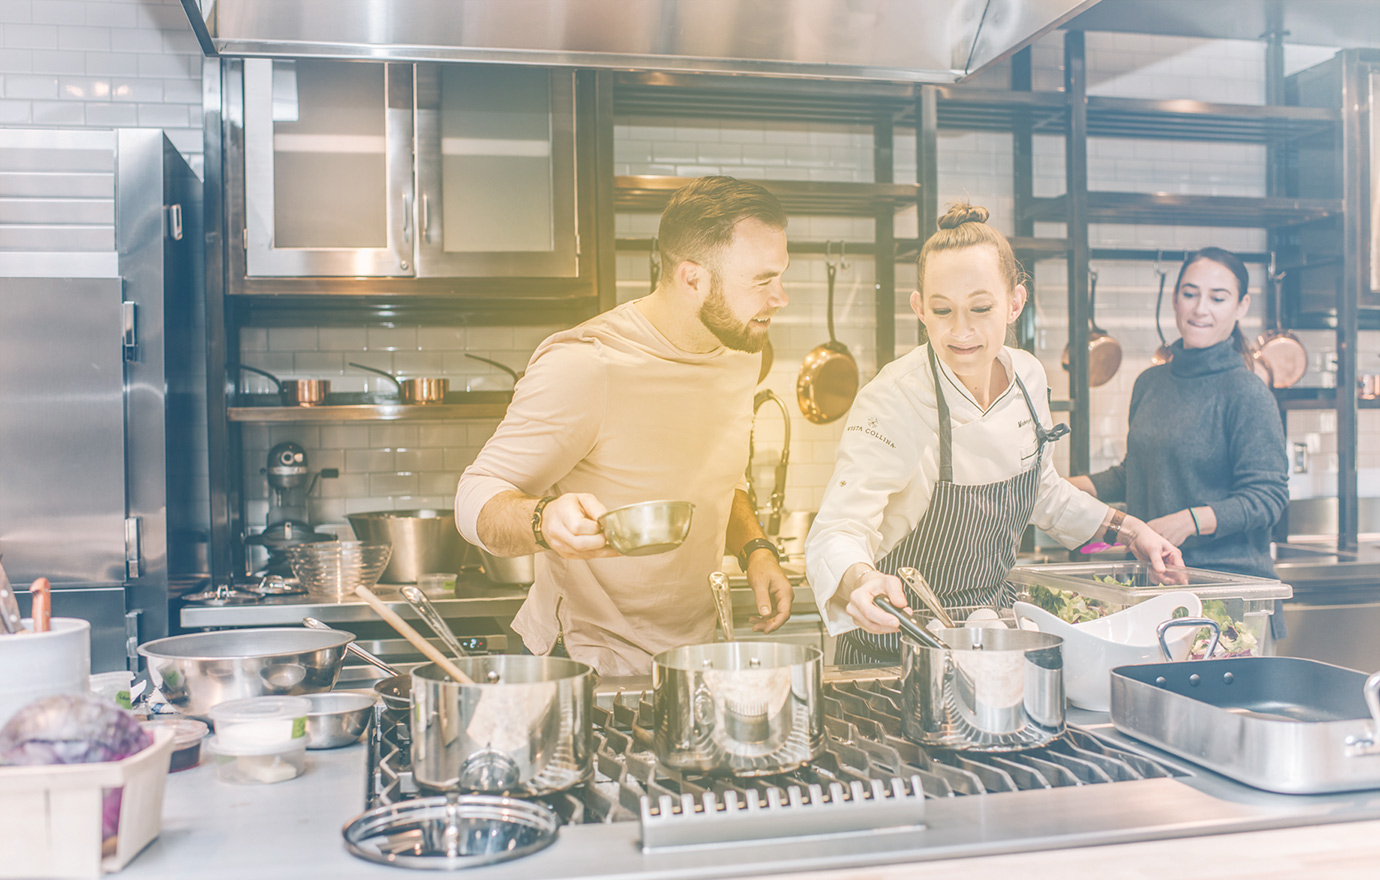 Cooking Classes, Demonstrations & More